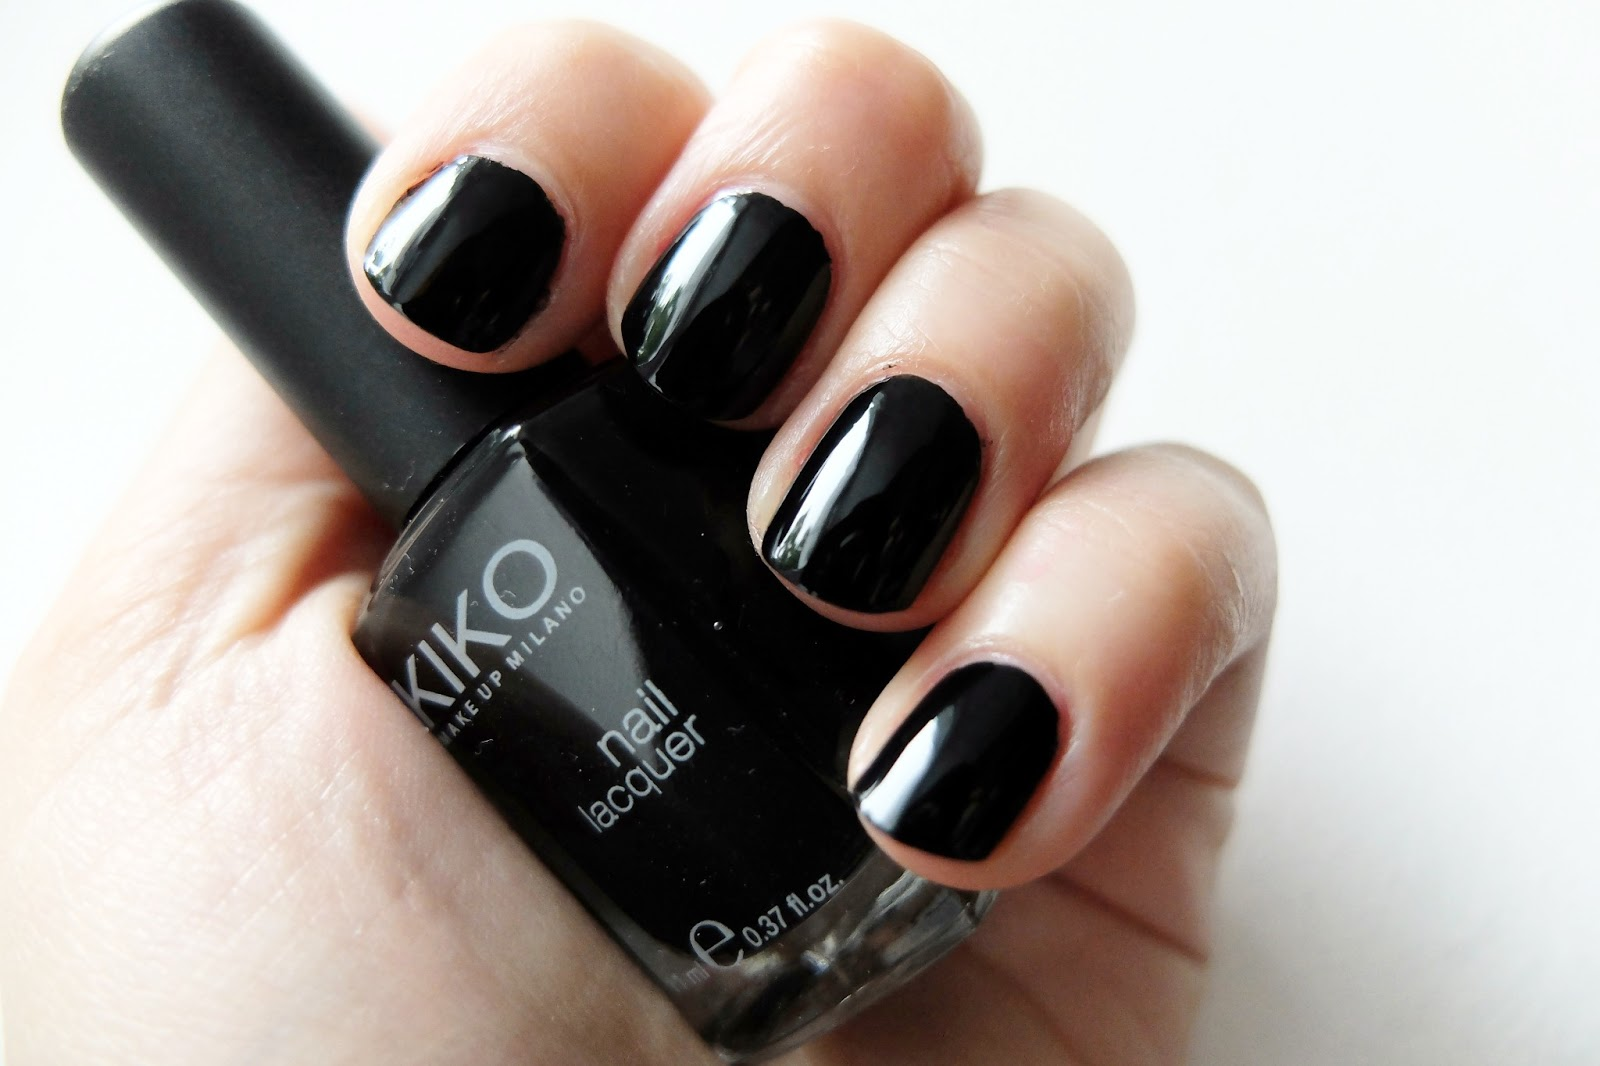 NAIL ART BLACK FRENCH MANUCURE